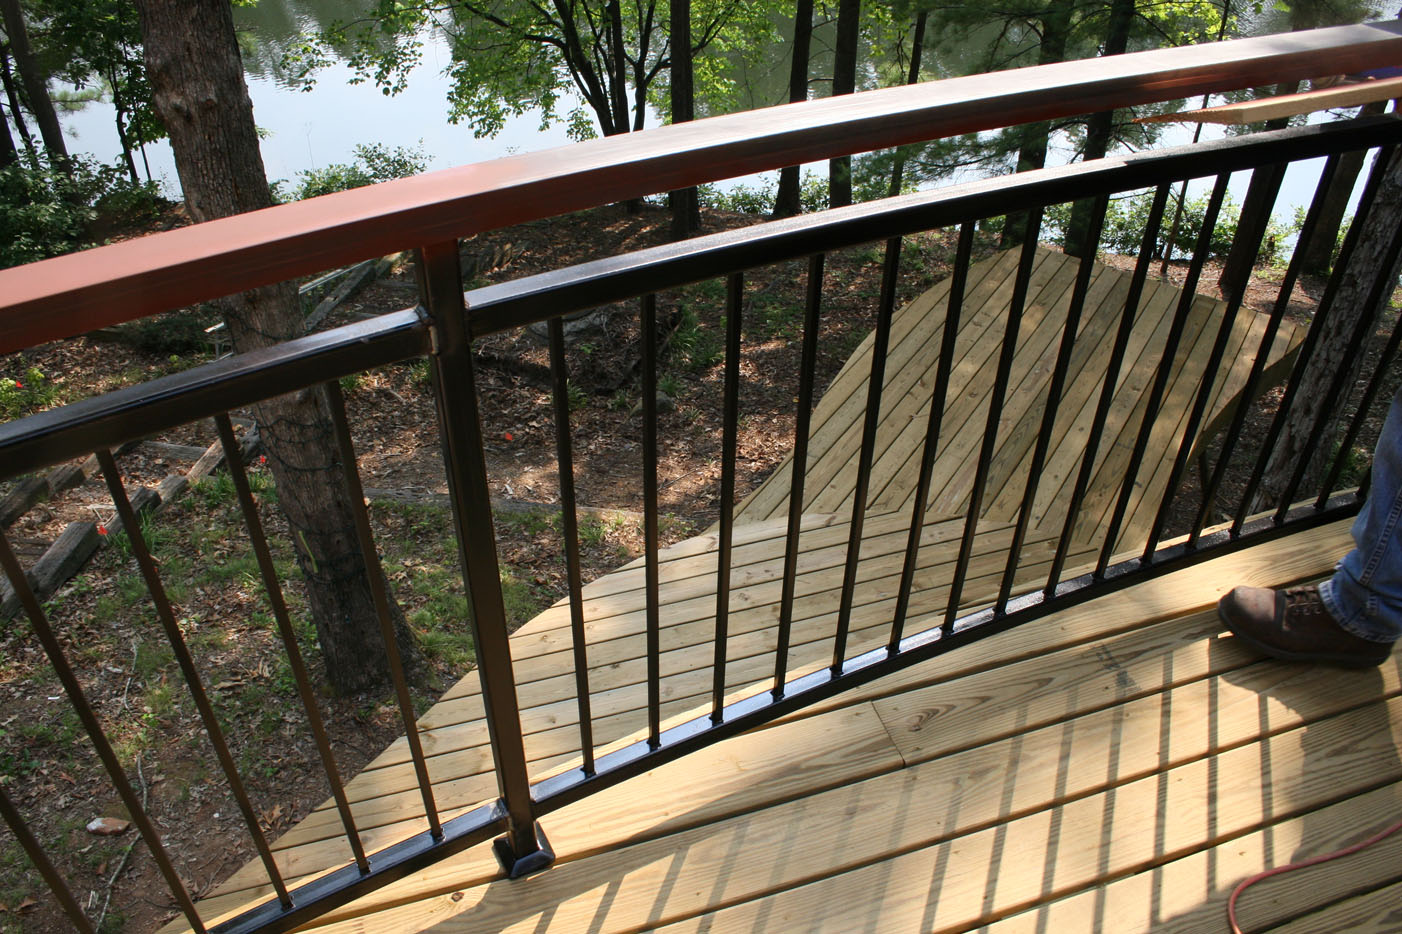 Westward machine and tool inc residential architectural for Balcony steel railing designs pictures